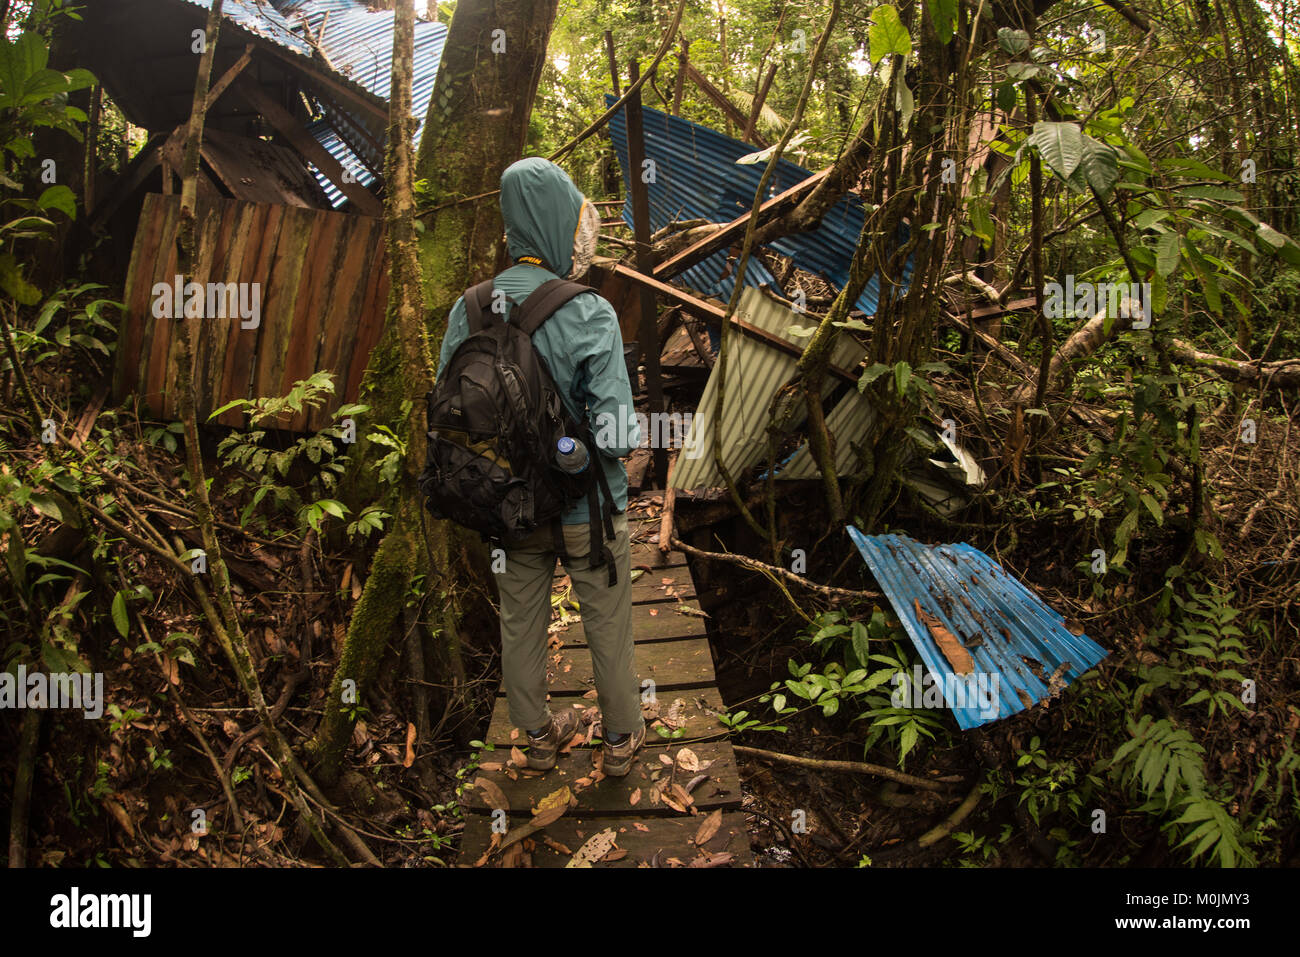 A hiker looking at a old ruined building in the Amazon rainforest that the jungle is slowly reclaiming. - Stock Image